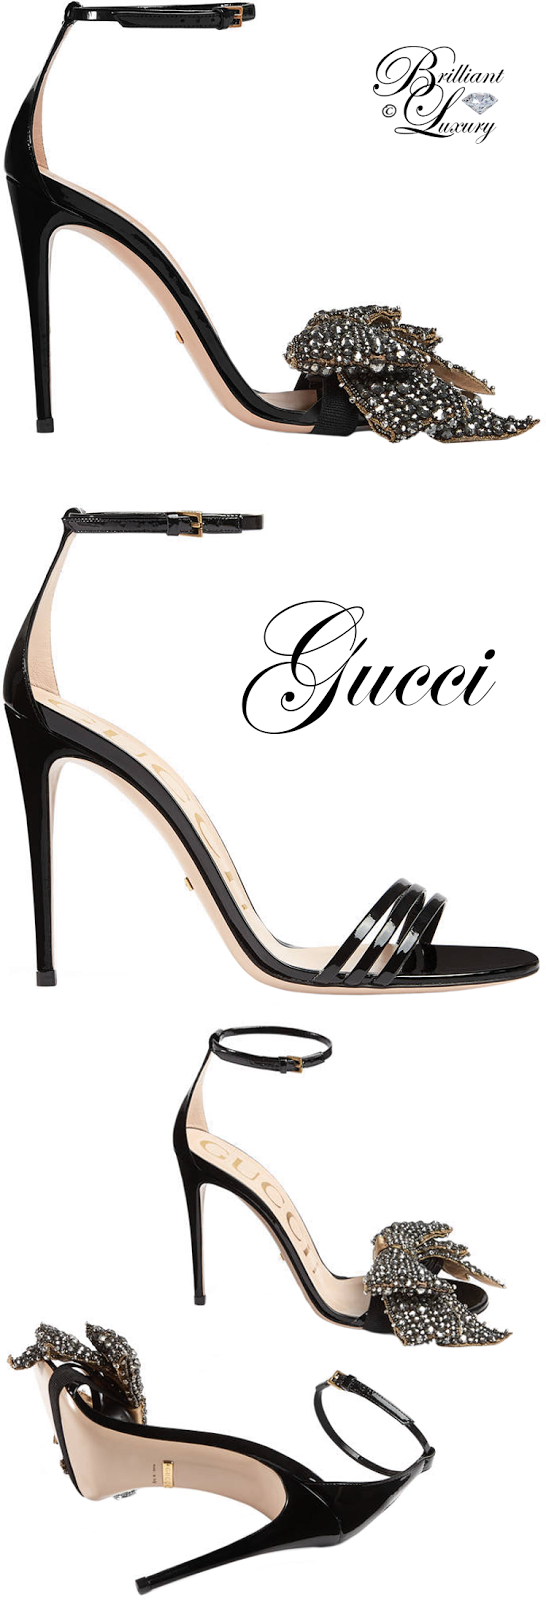 Brilliant Luxury ♦ Gucci Patent Leather Sandal With Removable Crystal Bow